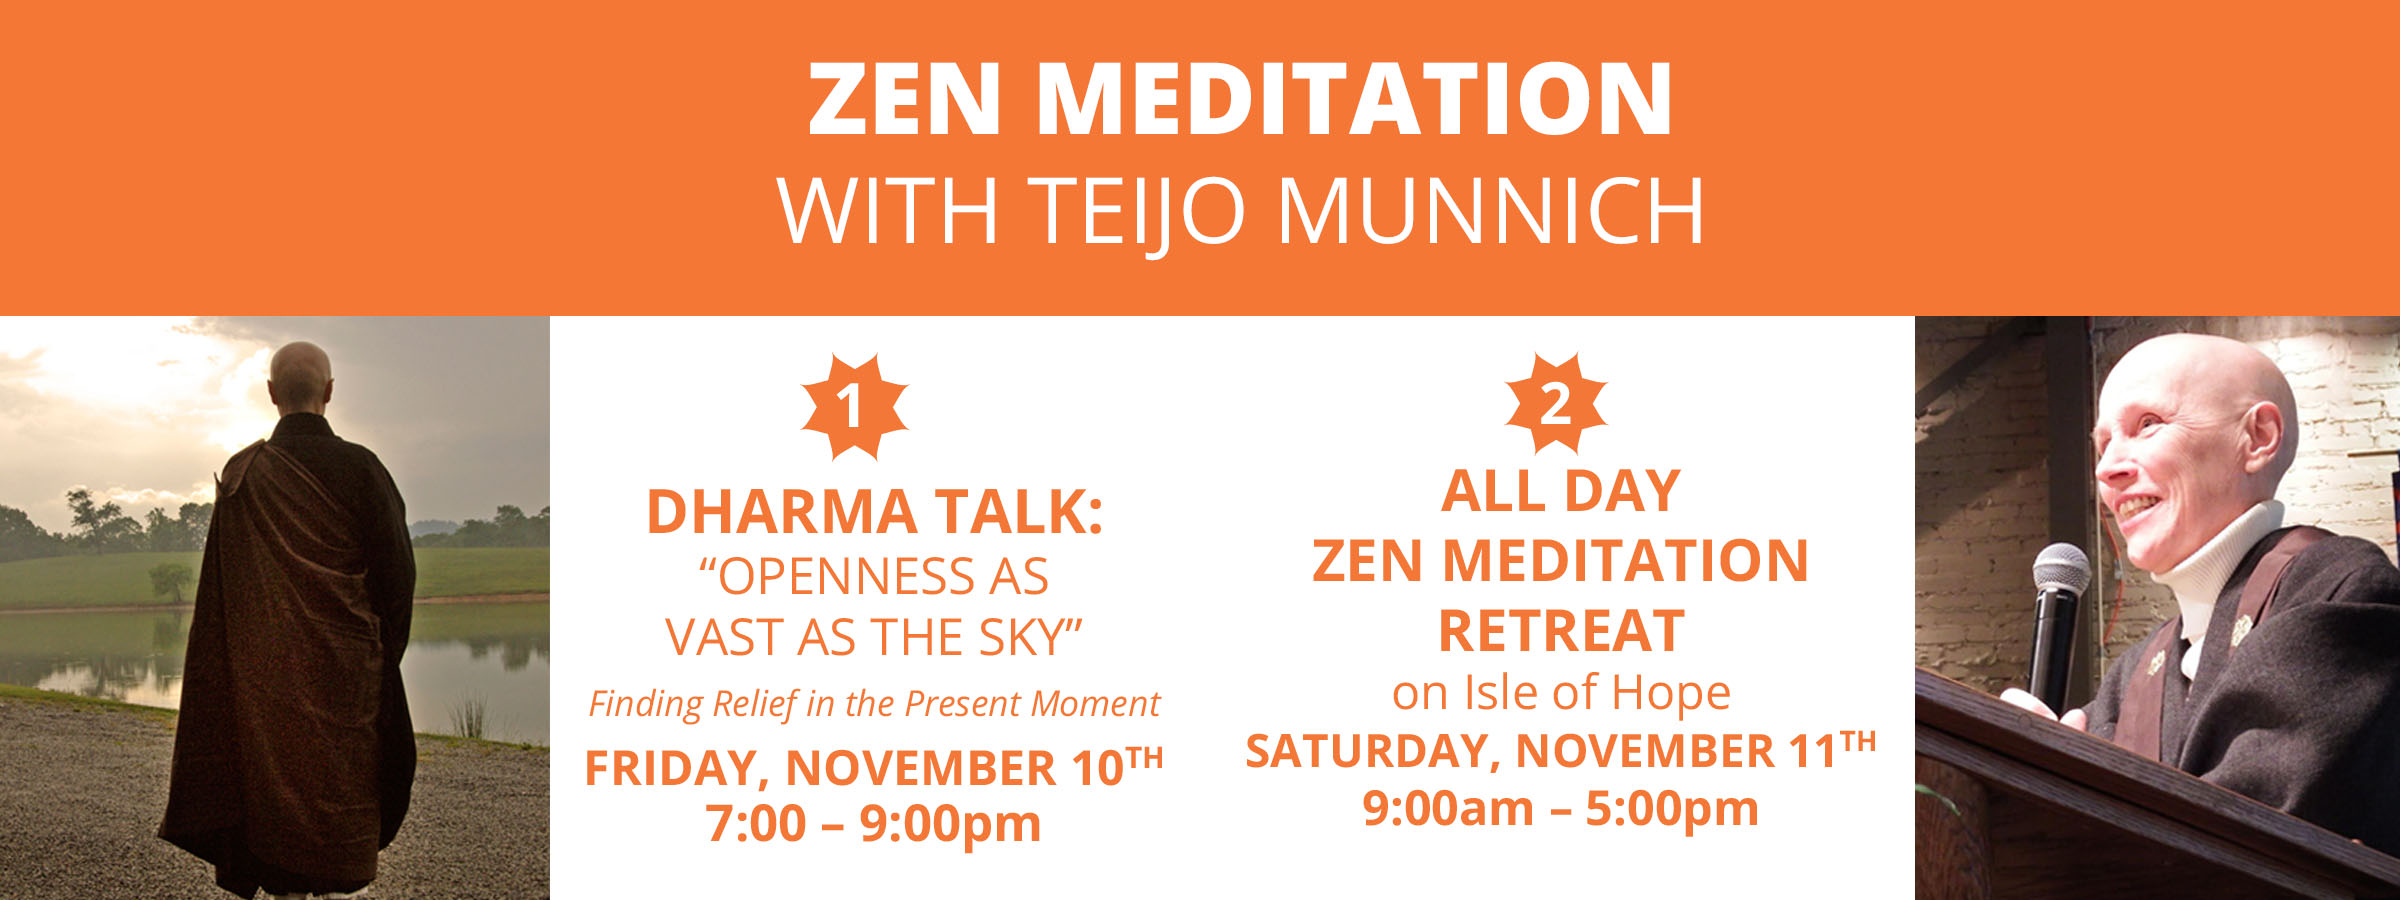 Zen Meditation Weekend